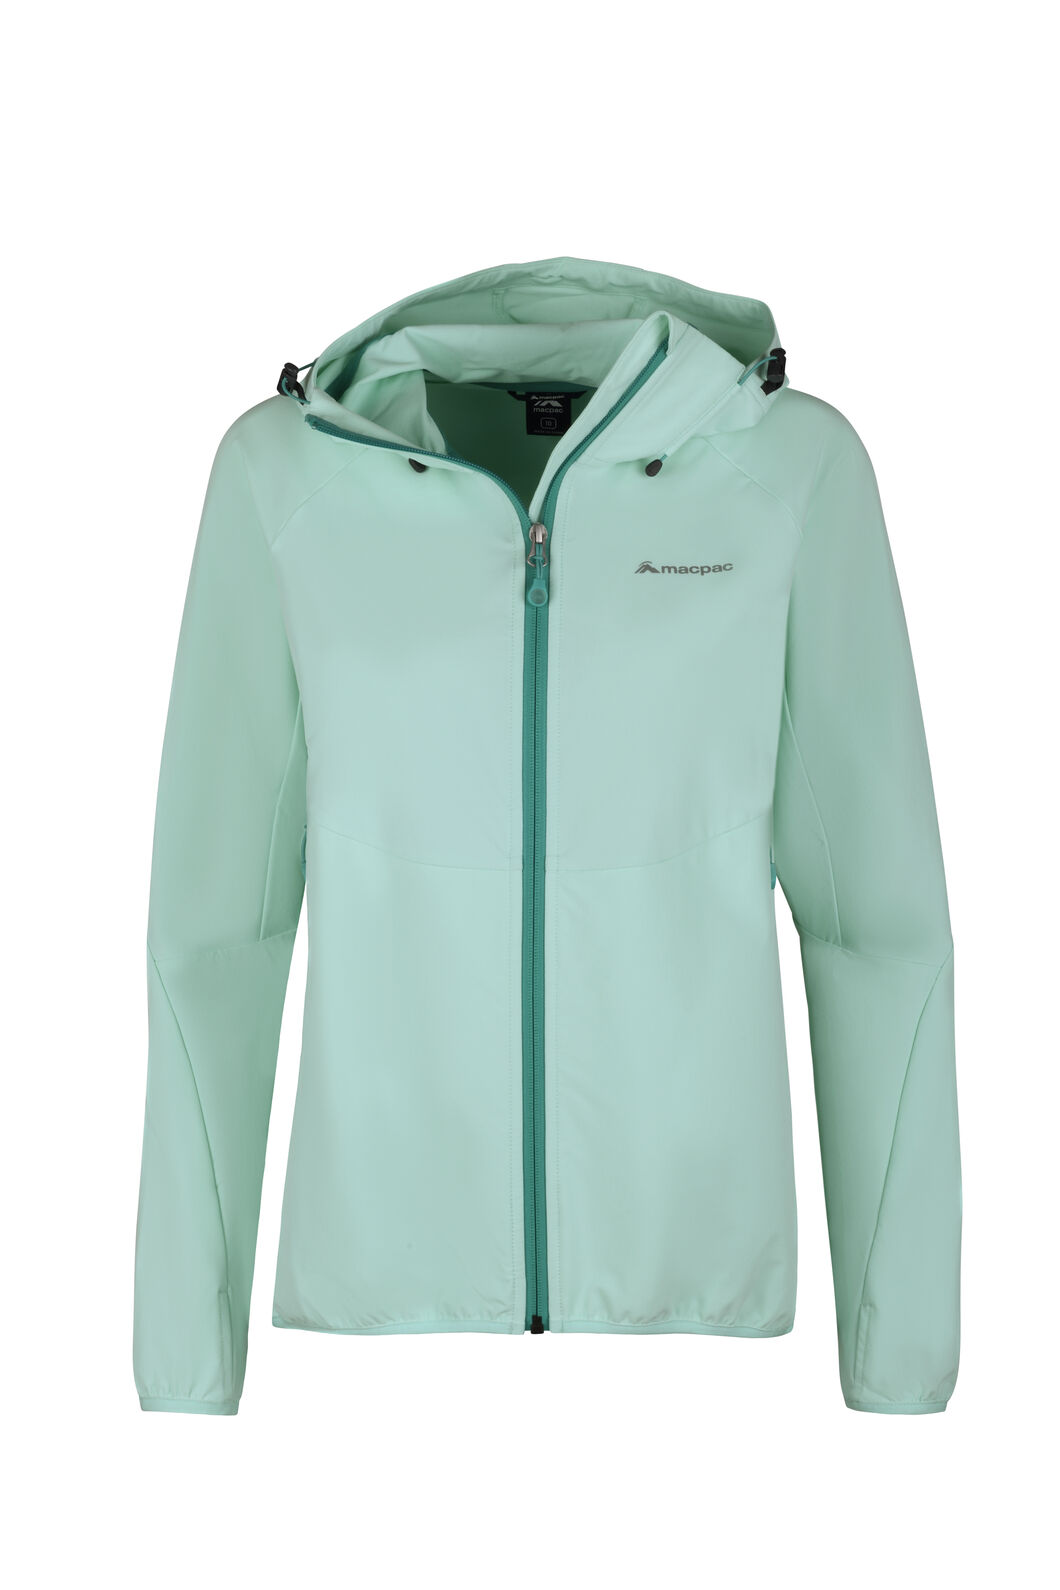 Macpac Mannering Hooded Jacket - Women's, Beach Glass, hi-res